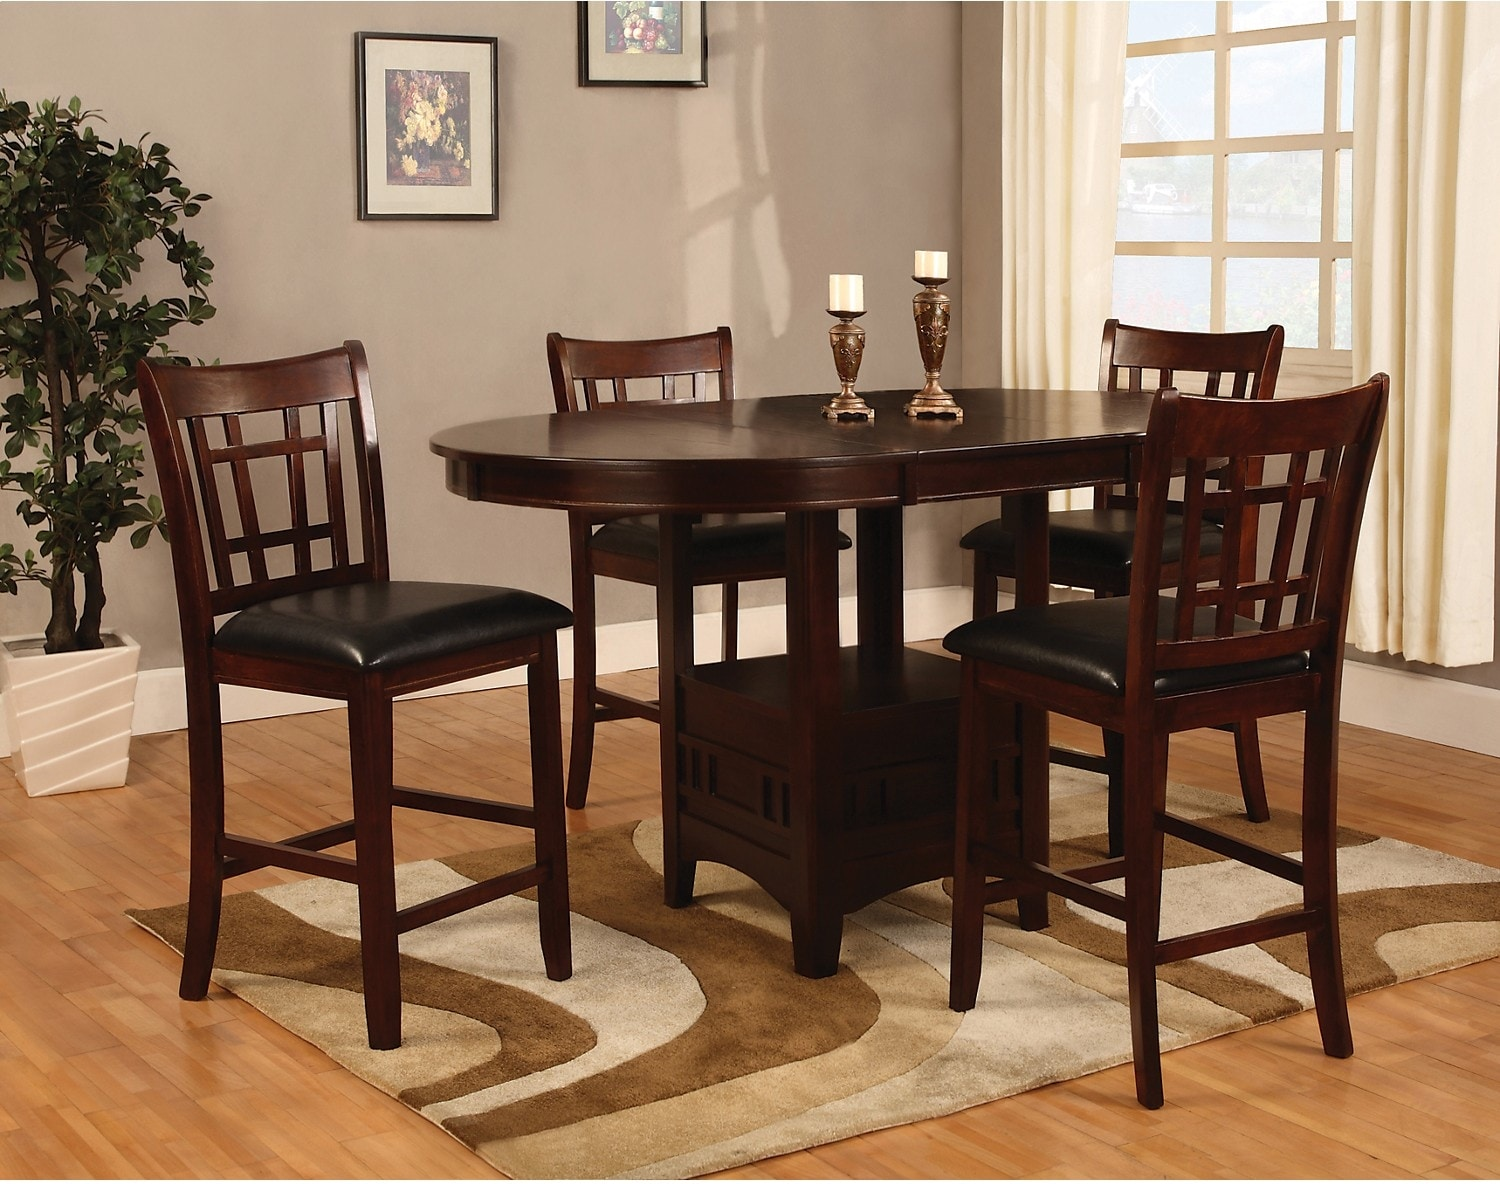 Dalton 7-Piece Counter-Height Dining Package - Chocolate